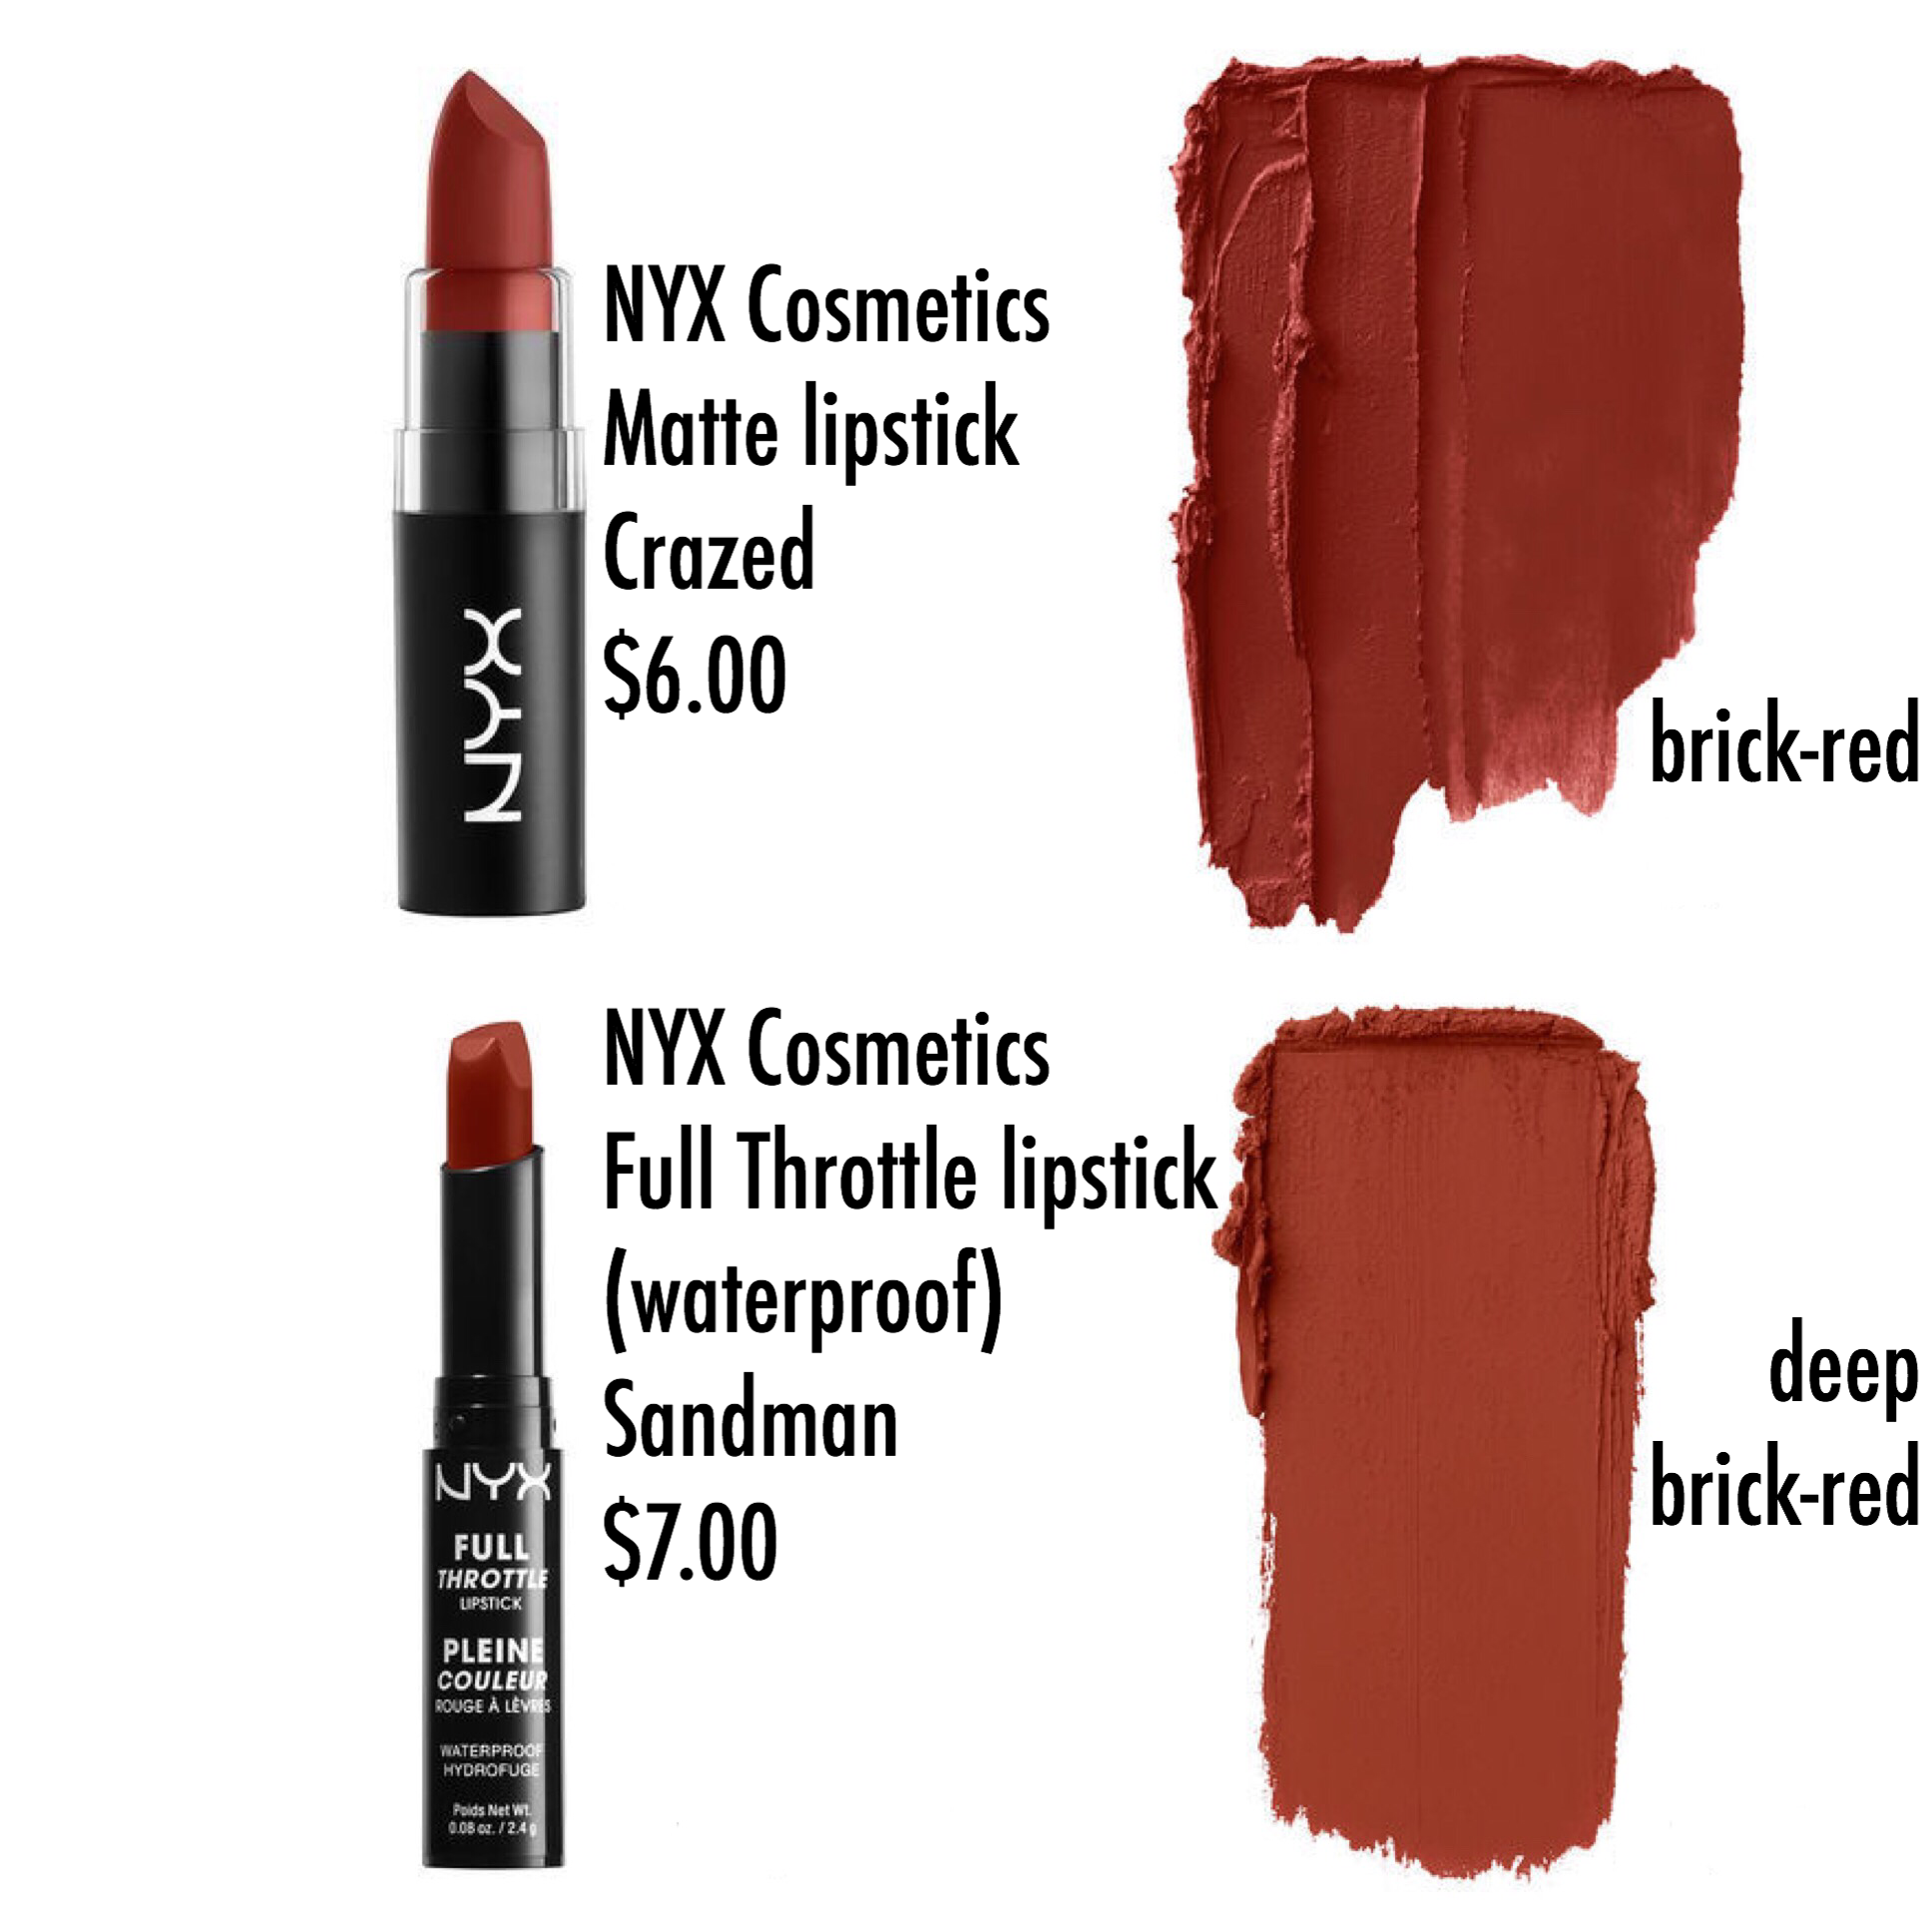 Totally Obsessed With Brick Lipstick Nyx Cosmetics Matte Lipstick Crazed Brick Red And Full Throttle Lip Nyx Cosmetics Fall Lipstick Matte Lipstick Brands